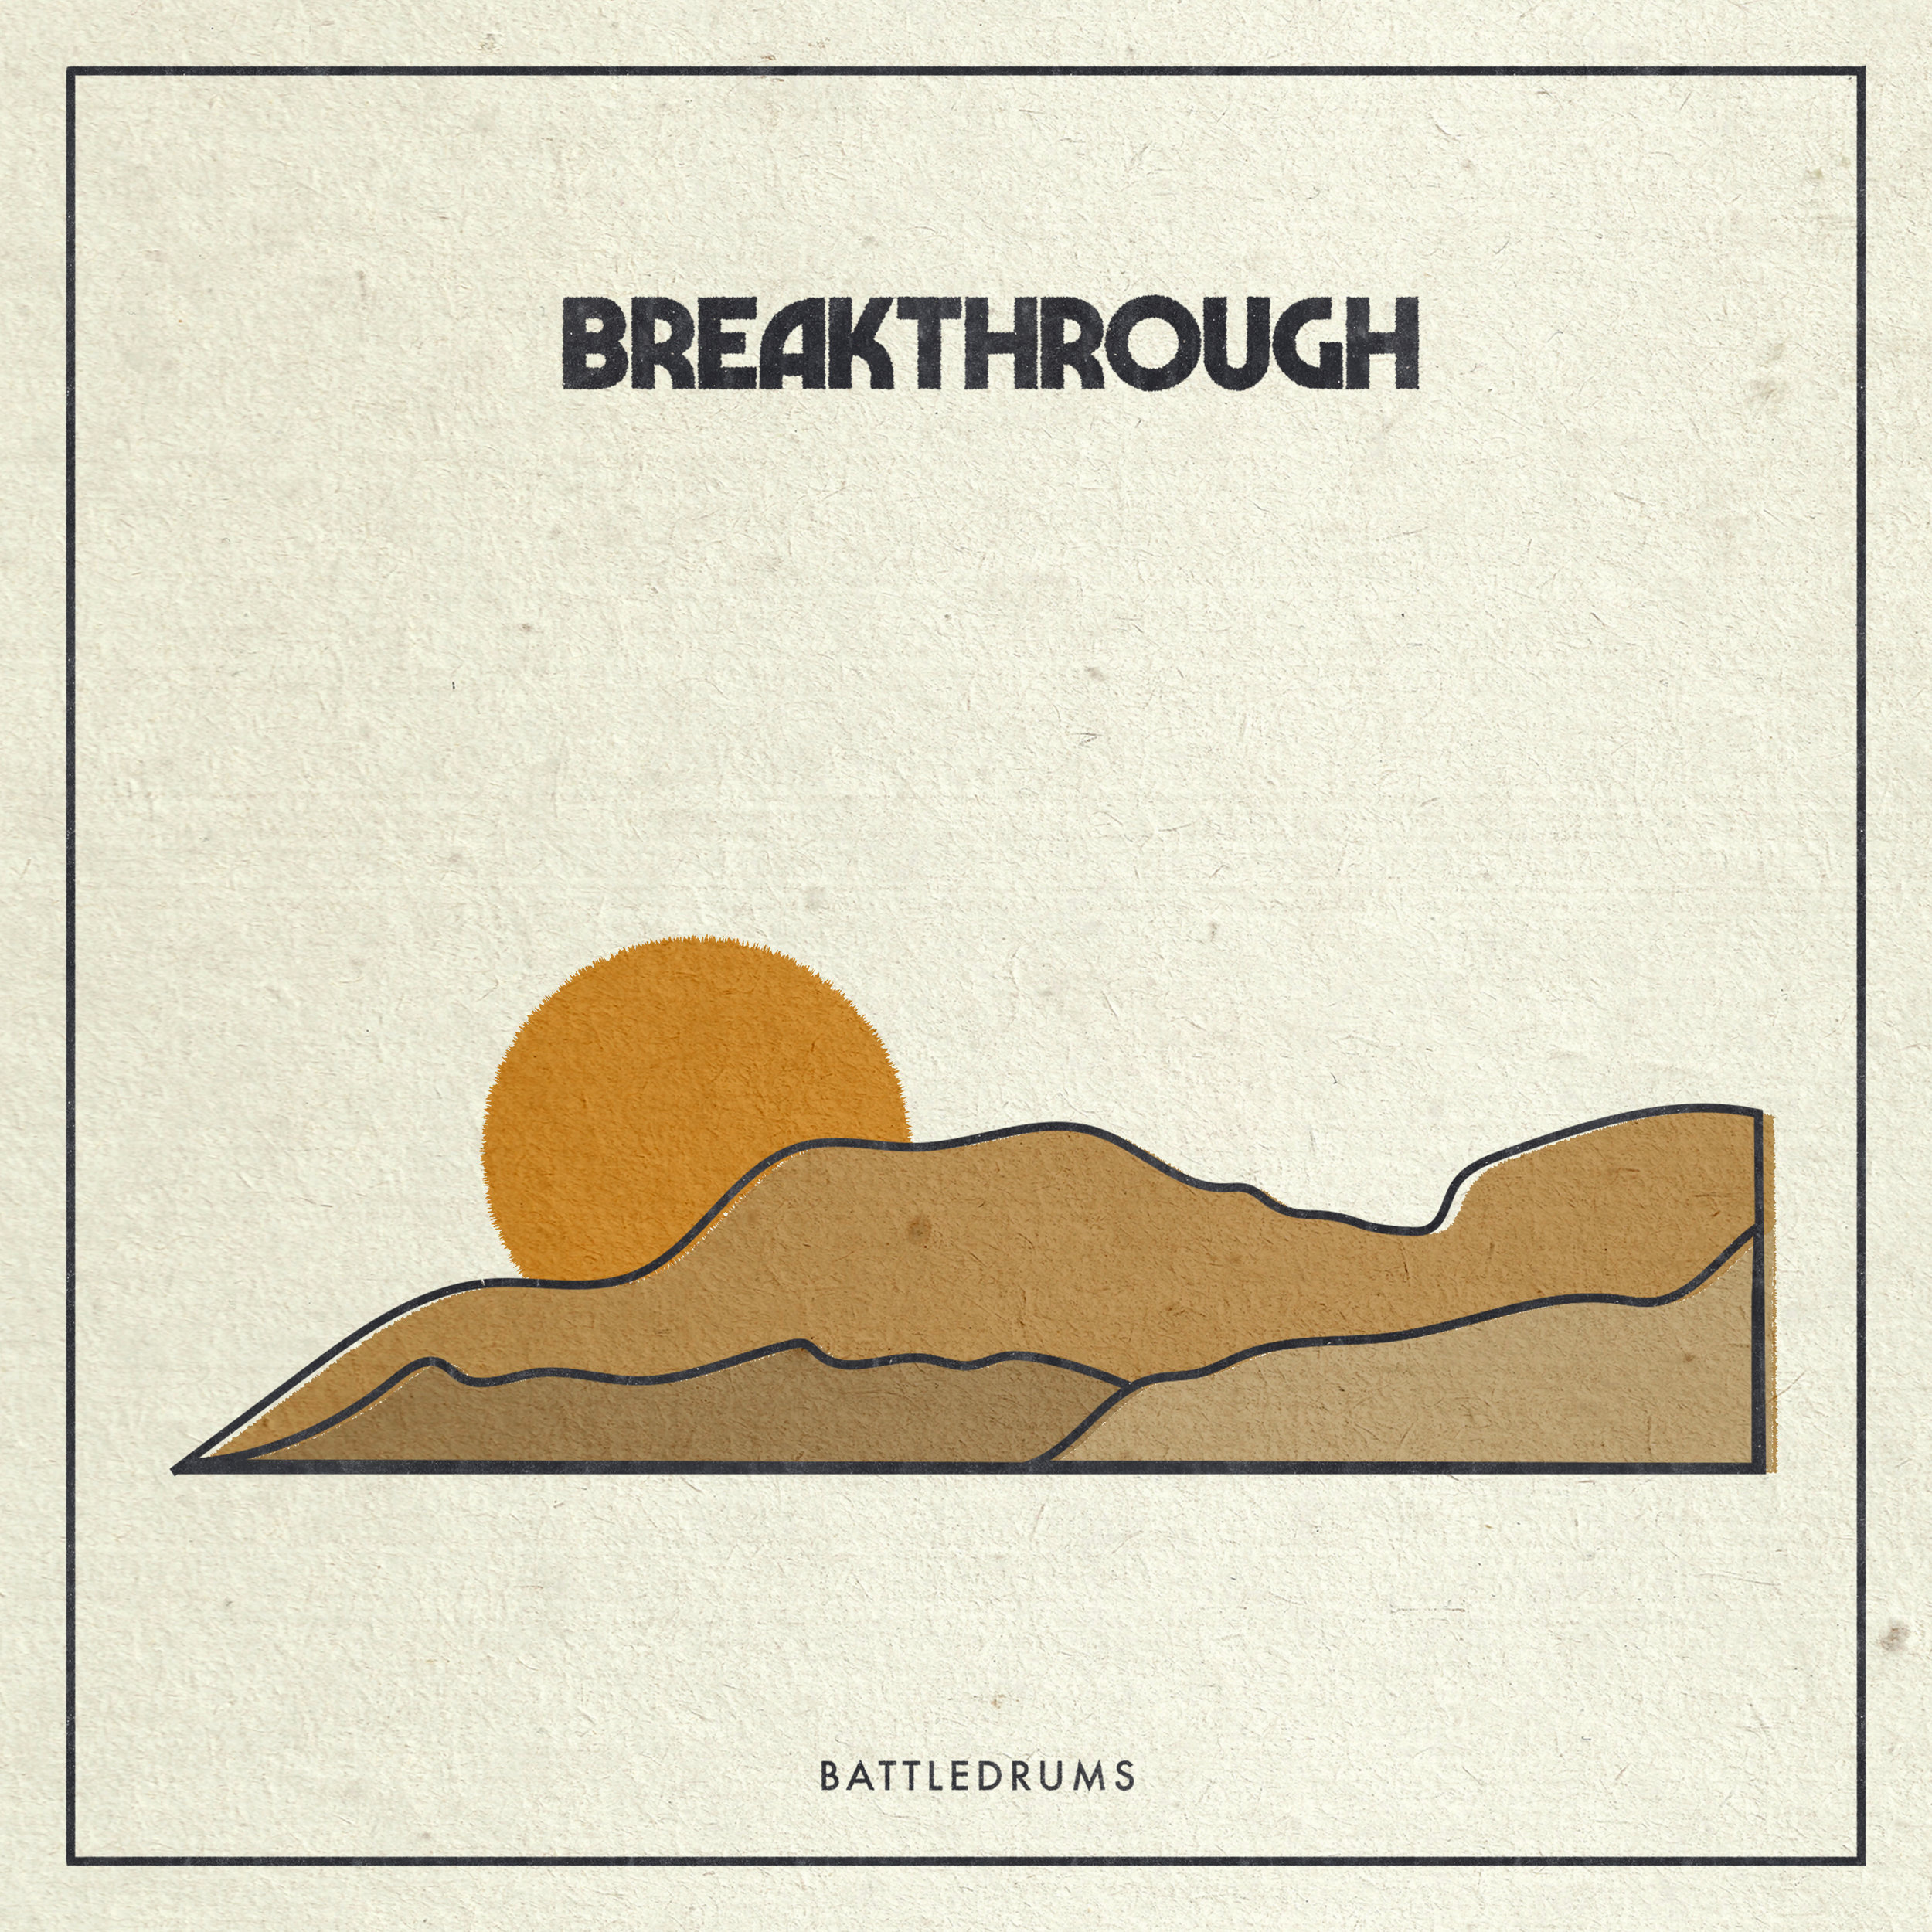 Battledrums-BreakthroughSingle-3000x3000.jpg